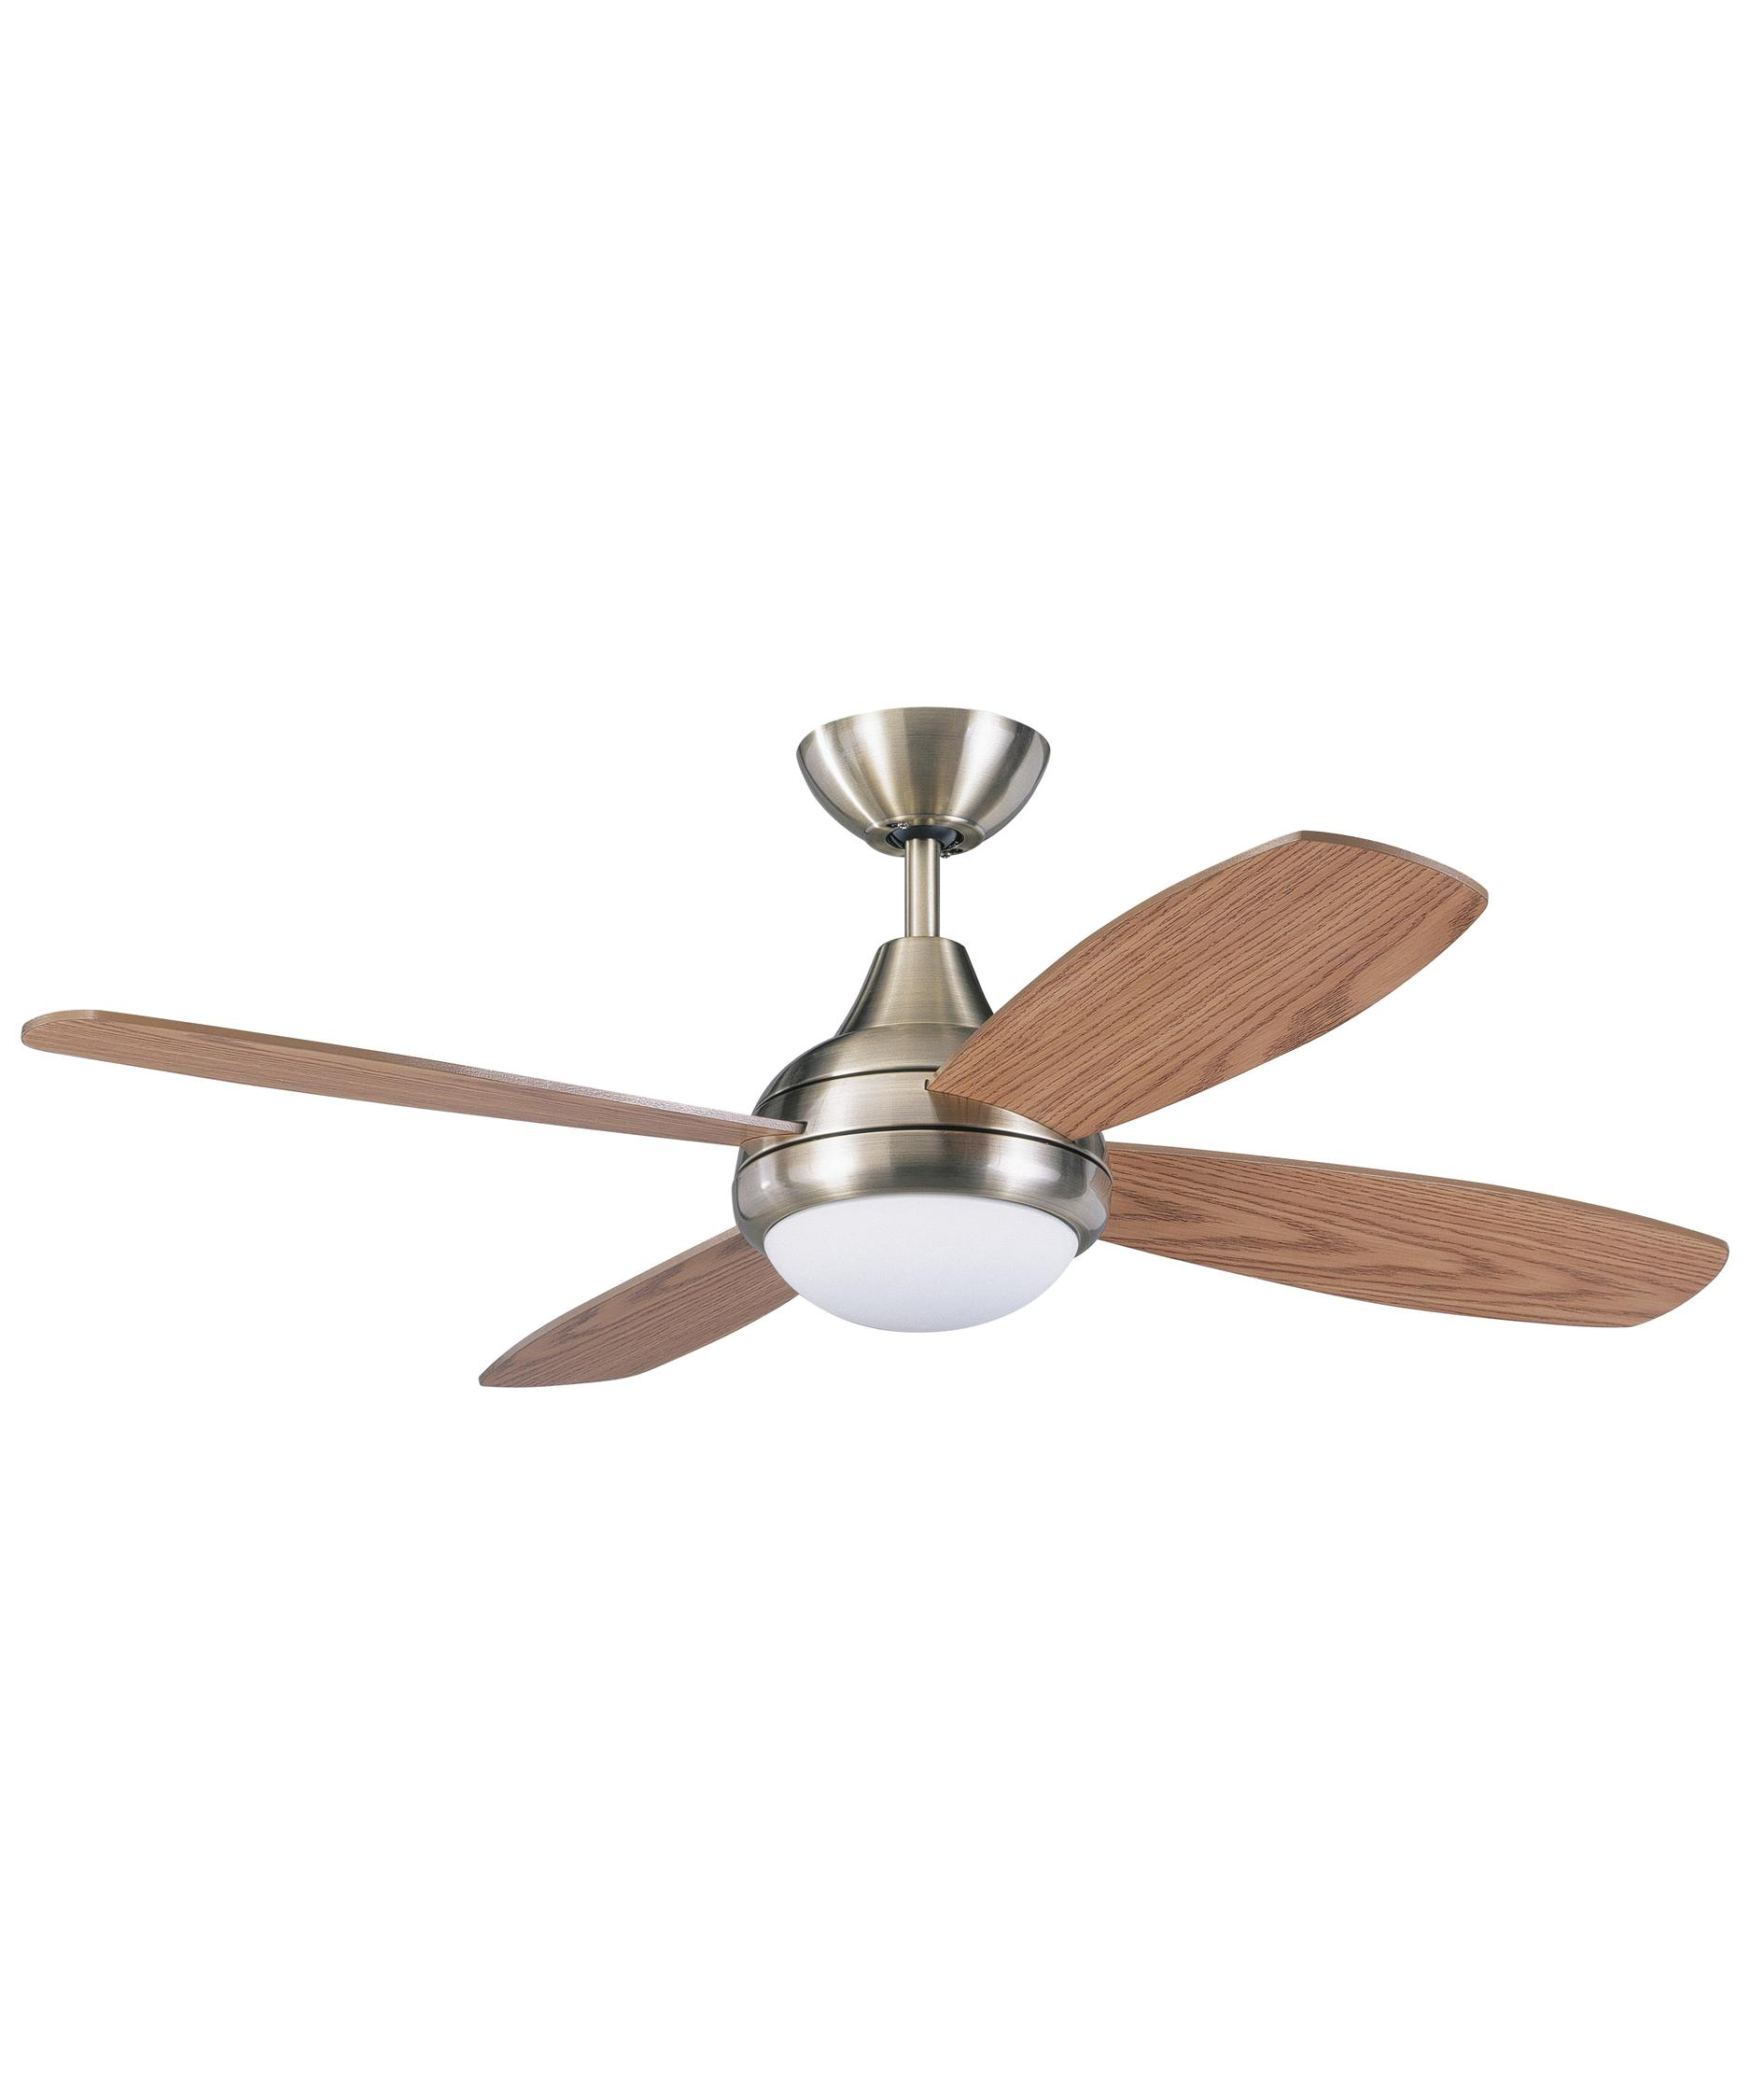 20 inch ceiling fan photo - 3